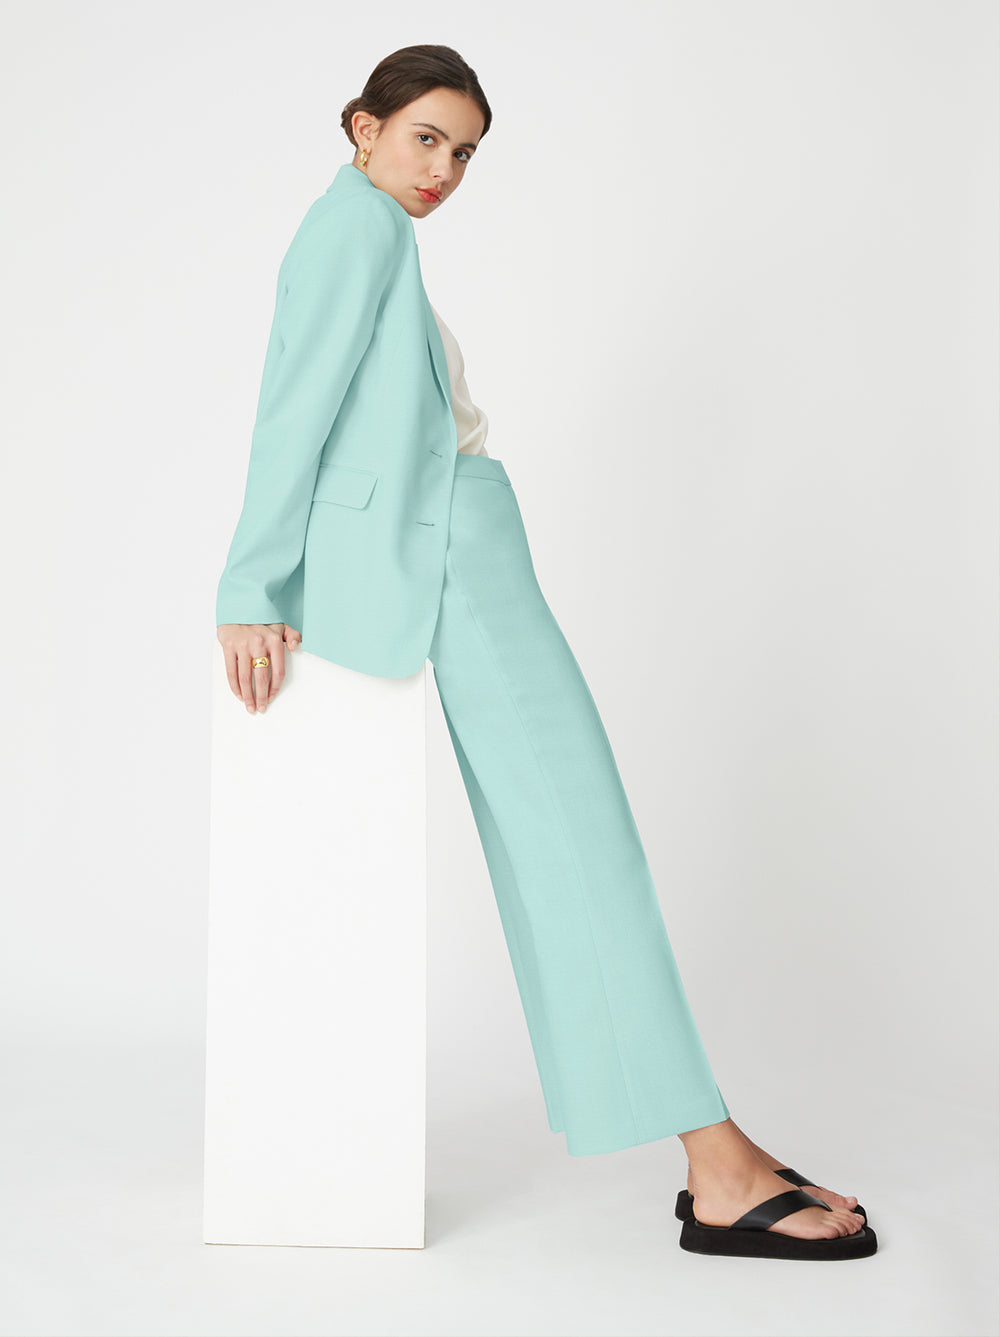 Lauder Mint Blazer by KITRI Studio